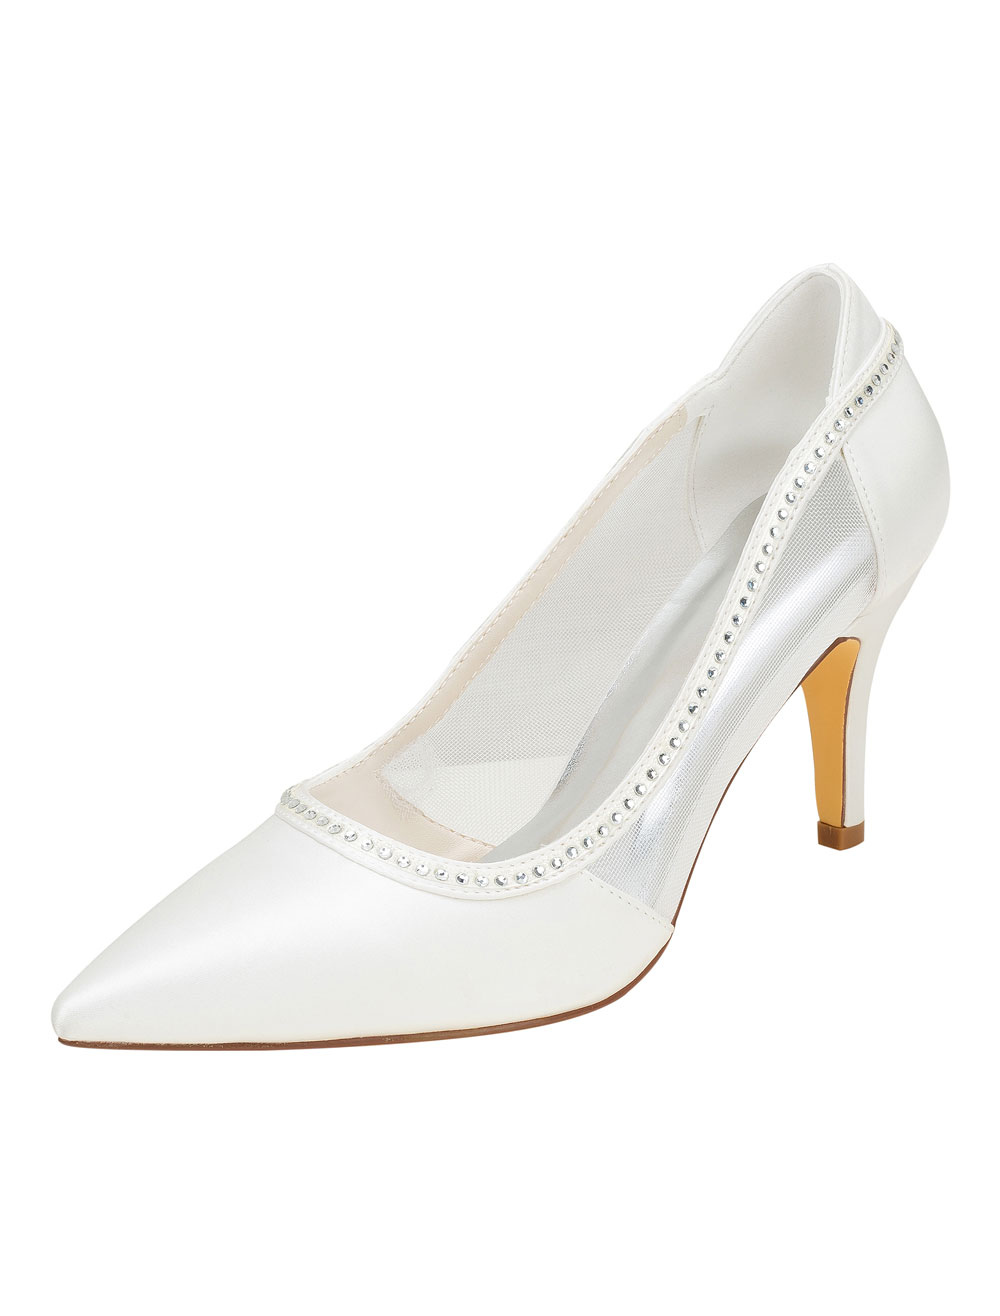 Ivory Wedding Shoes Silk High Heel Pointed Toe Rhinestones Slip On Pumps